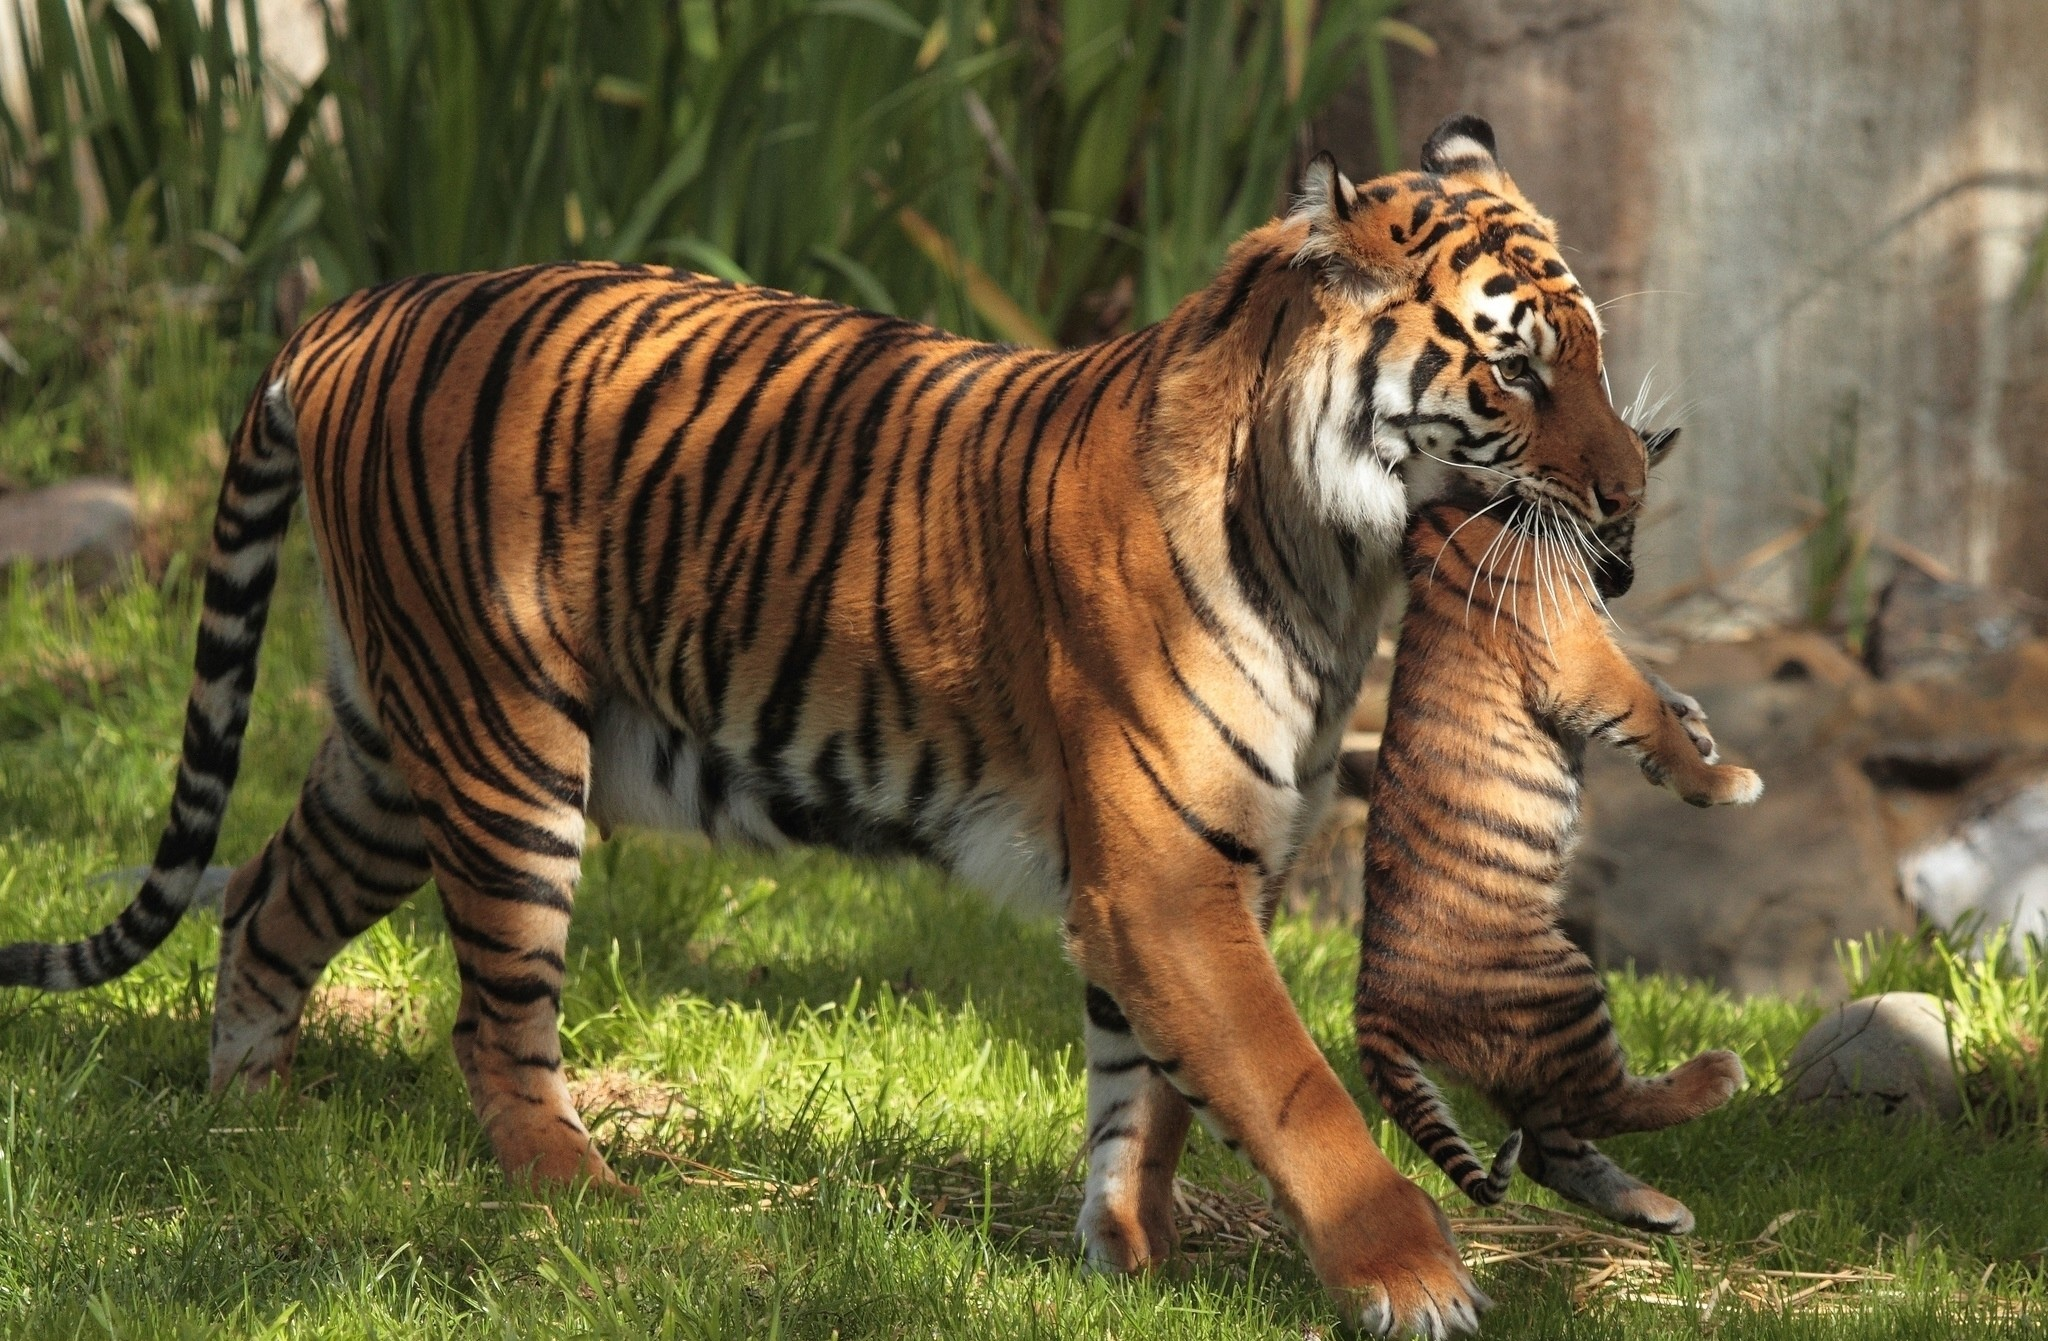 Res: 2048x1341, HD Wallpaper | Background Image ID:427058.  Animal Tiger